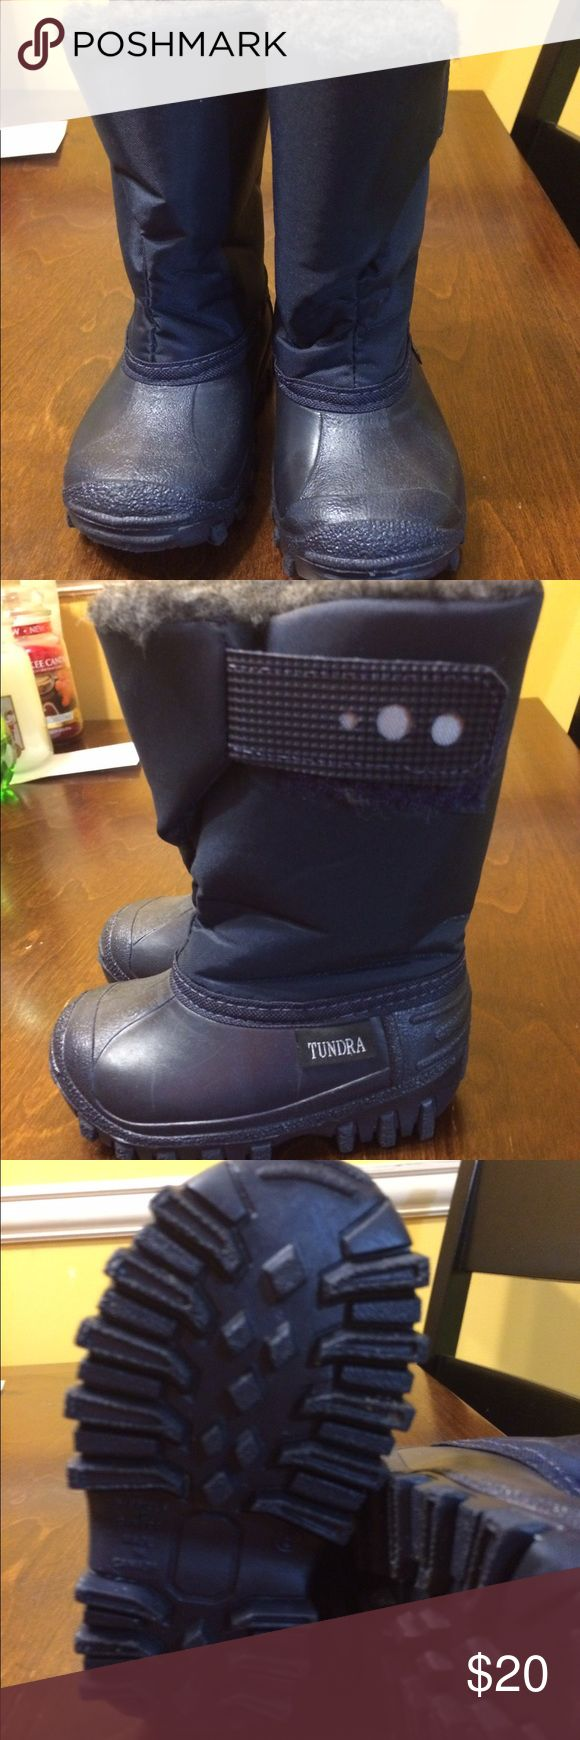 Toddler size 5 Tundra winter boots Navy blue toddler winter boots in perfect like new condition. Worn only twice for a few minutes. Tundra Shoes Rain & Snow Boots